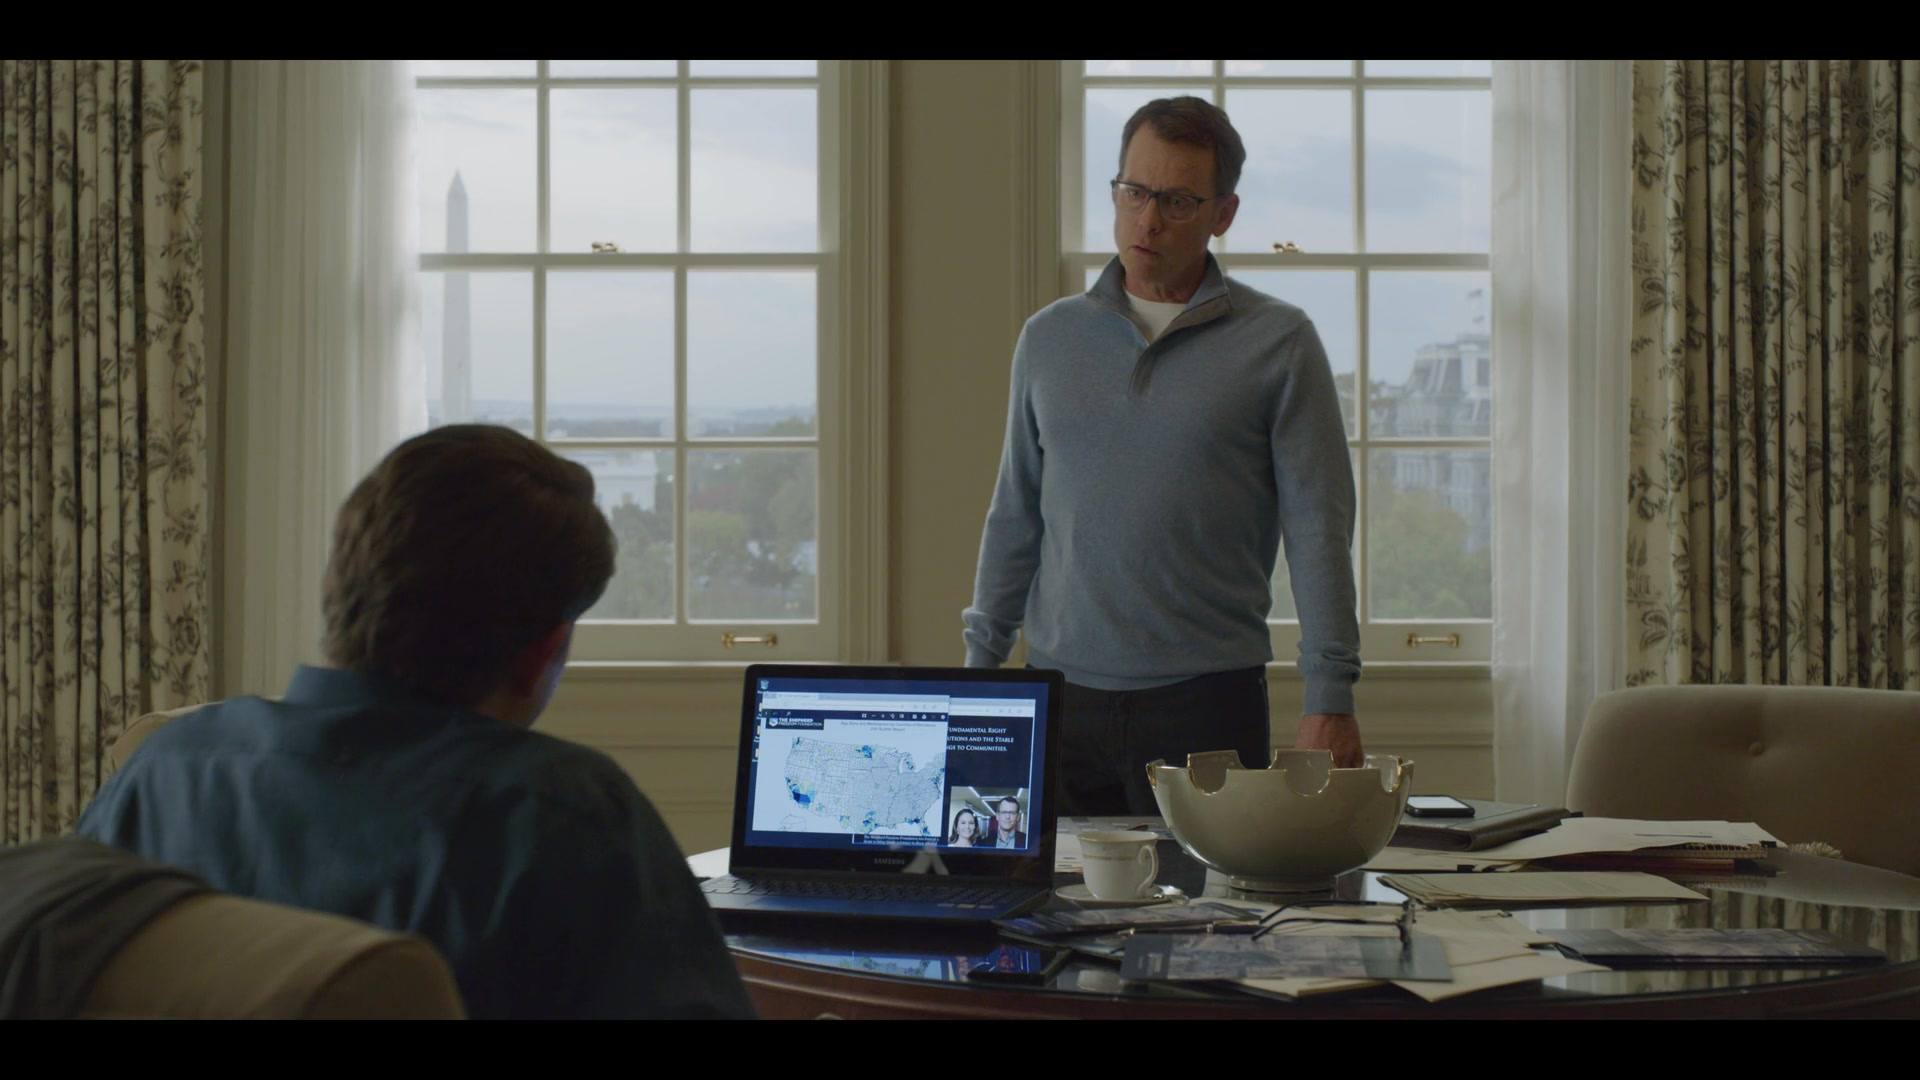 Samsung Laptop Used By Derek Cecil In House Of Cards Season 6